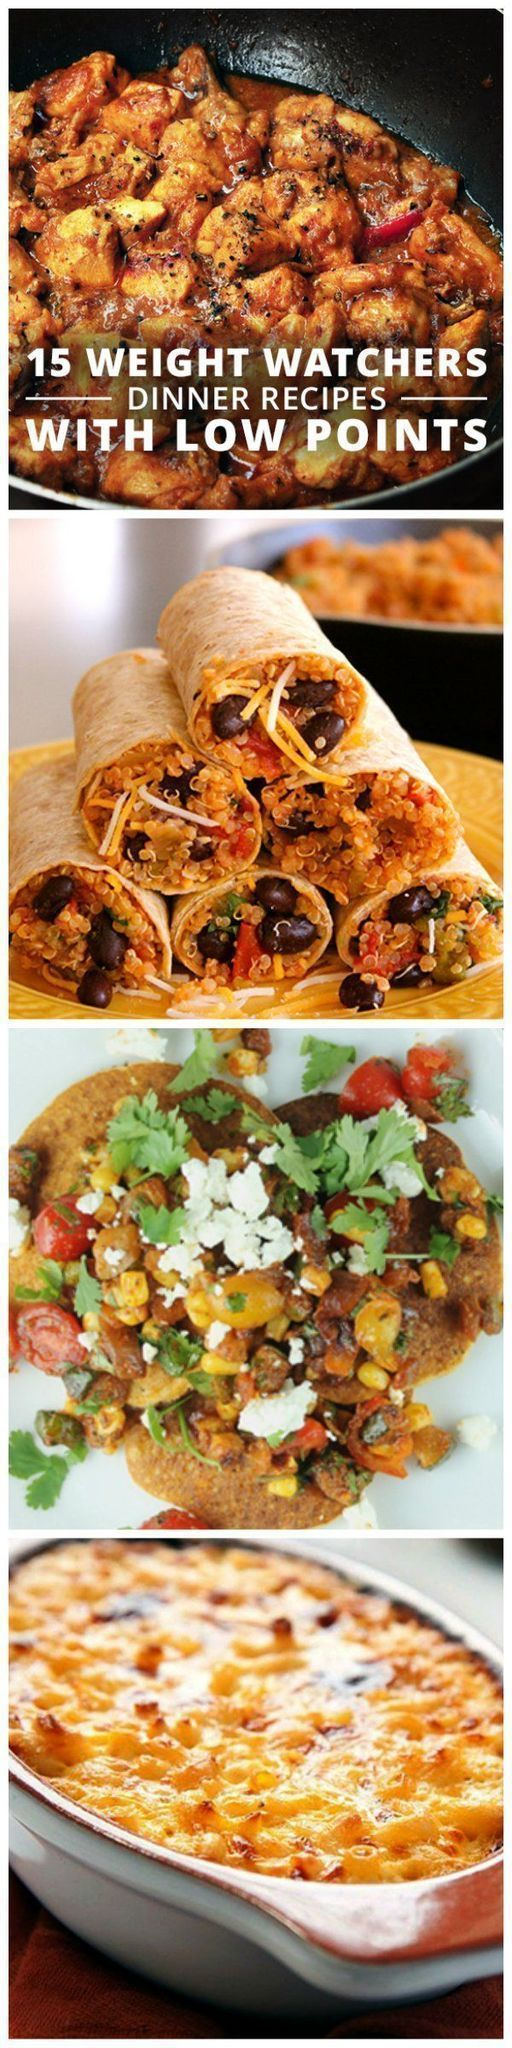 15 Weight Watchers Dinner Recipes with Low Points! #SkinnyMs